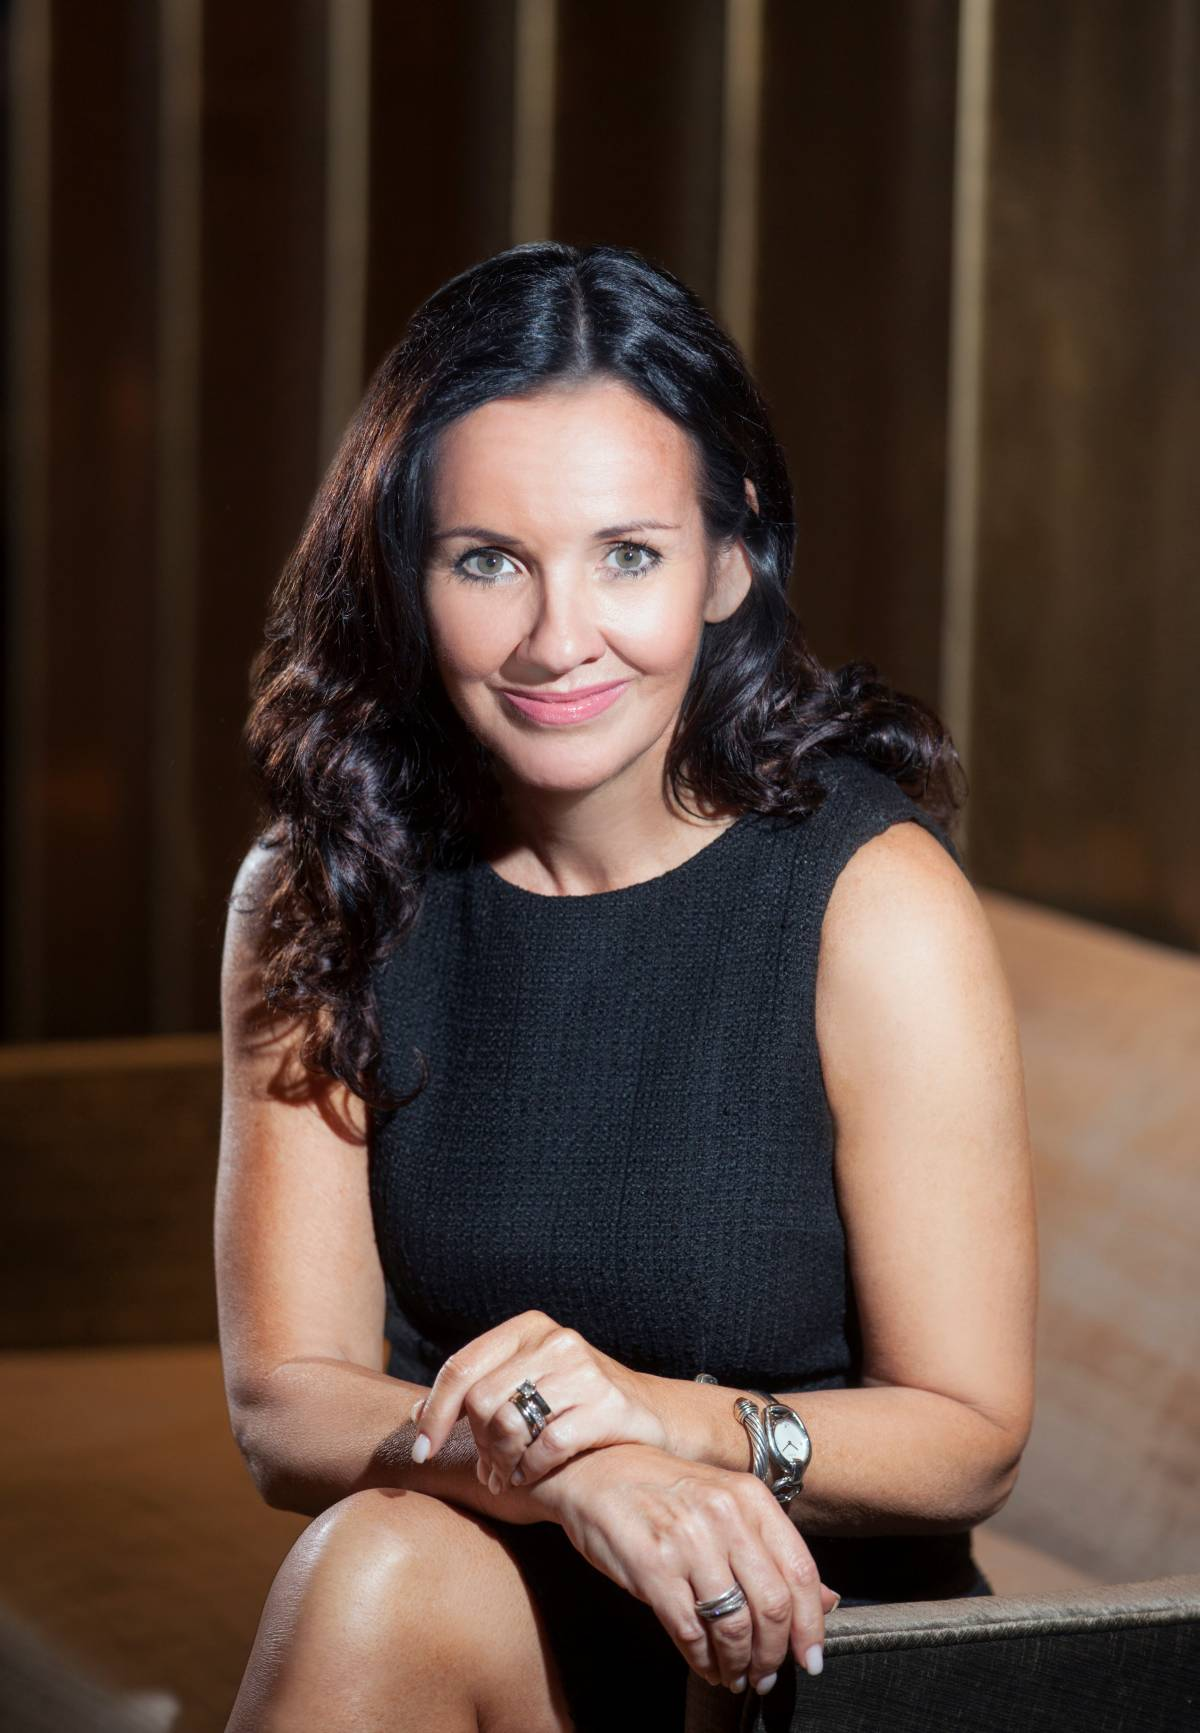 Sandy Russell, Global Innovative Hotelier, Joins Wharf Hotels